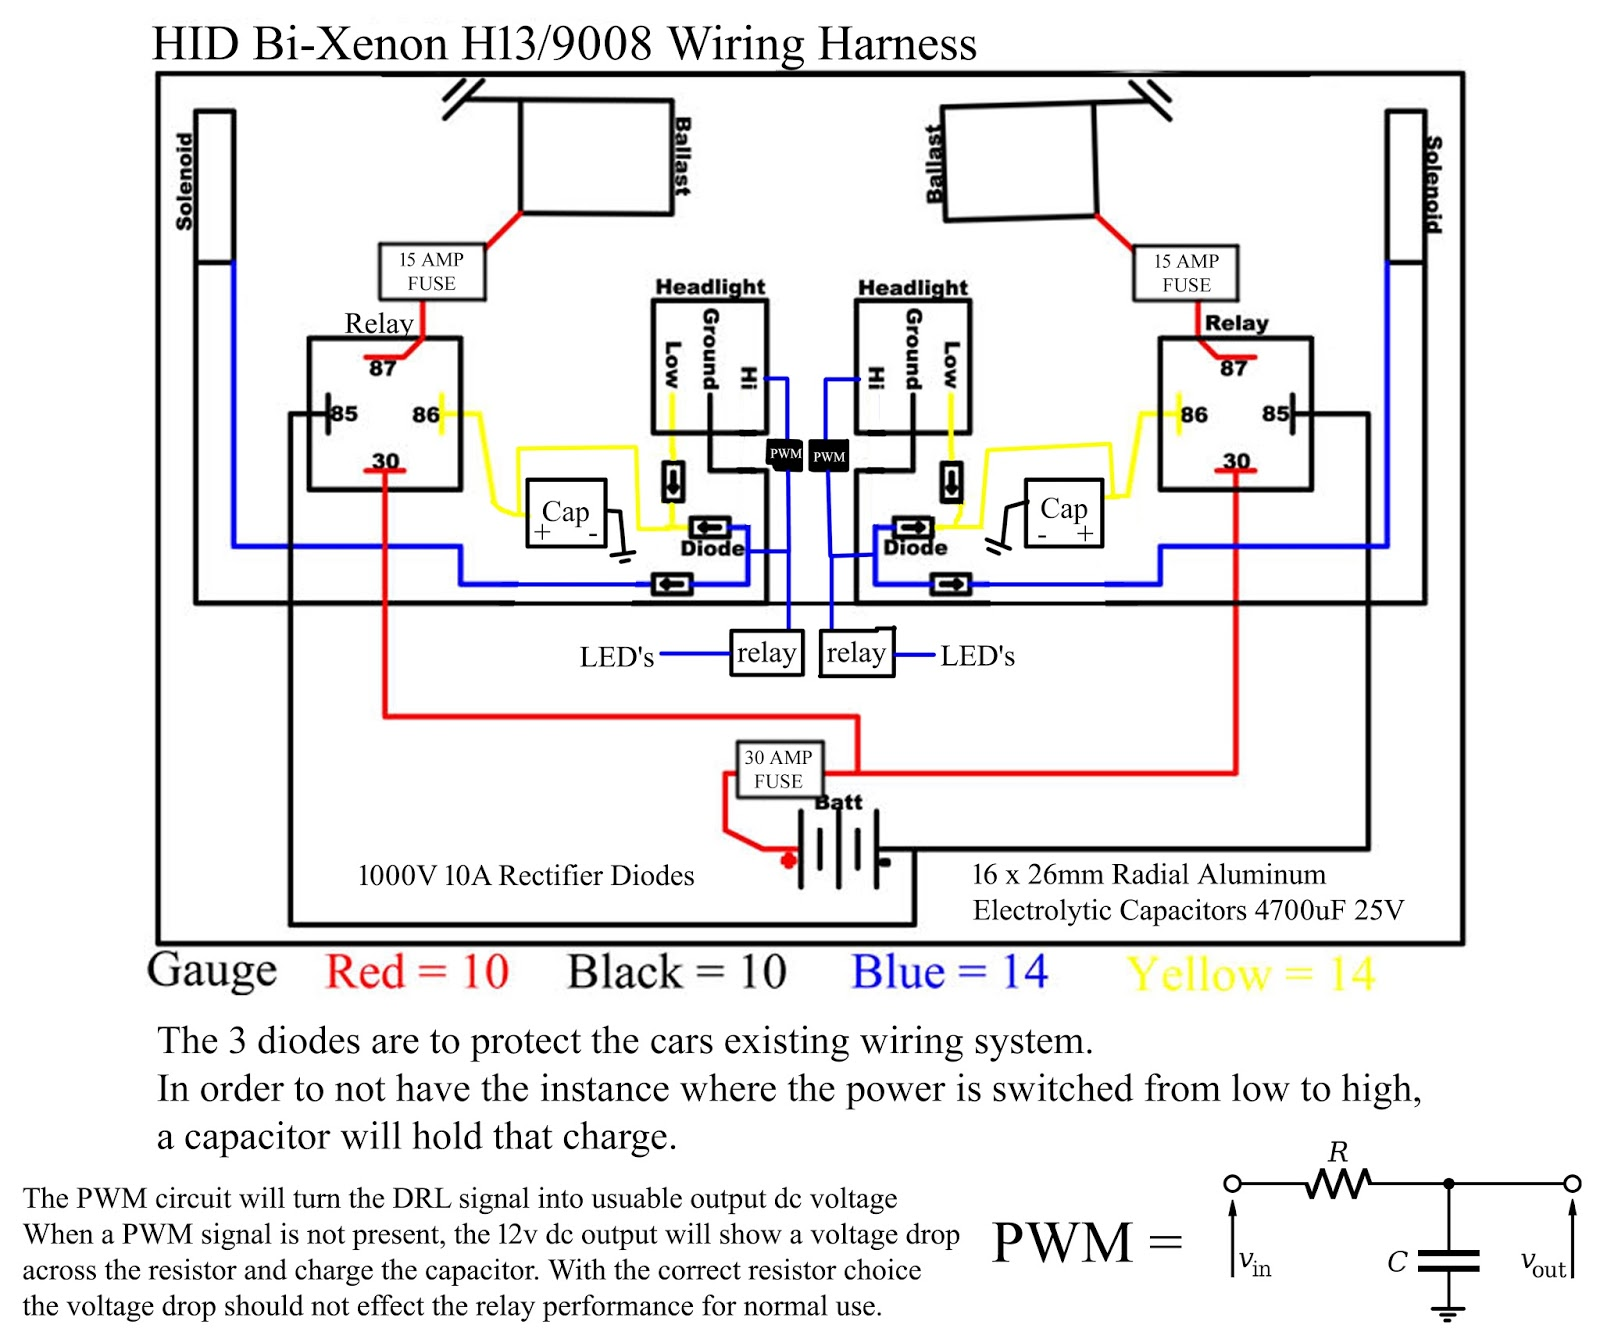 giowiringforhidp%2Bcopy h13 9008 wiring diagram wiring diagrams 9007 wiring diagram at nearapp.co